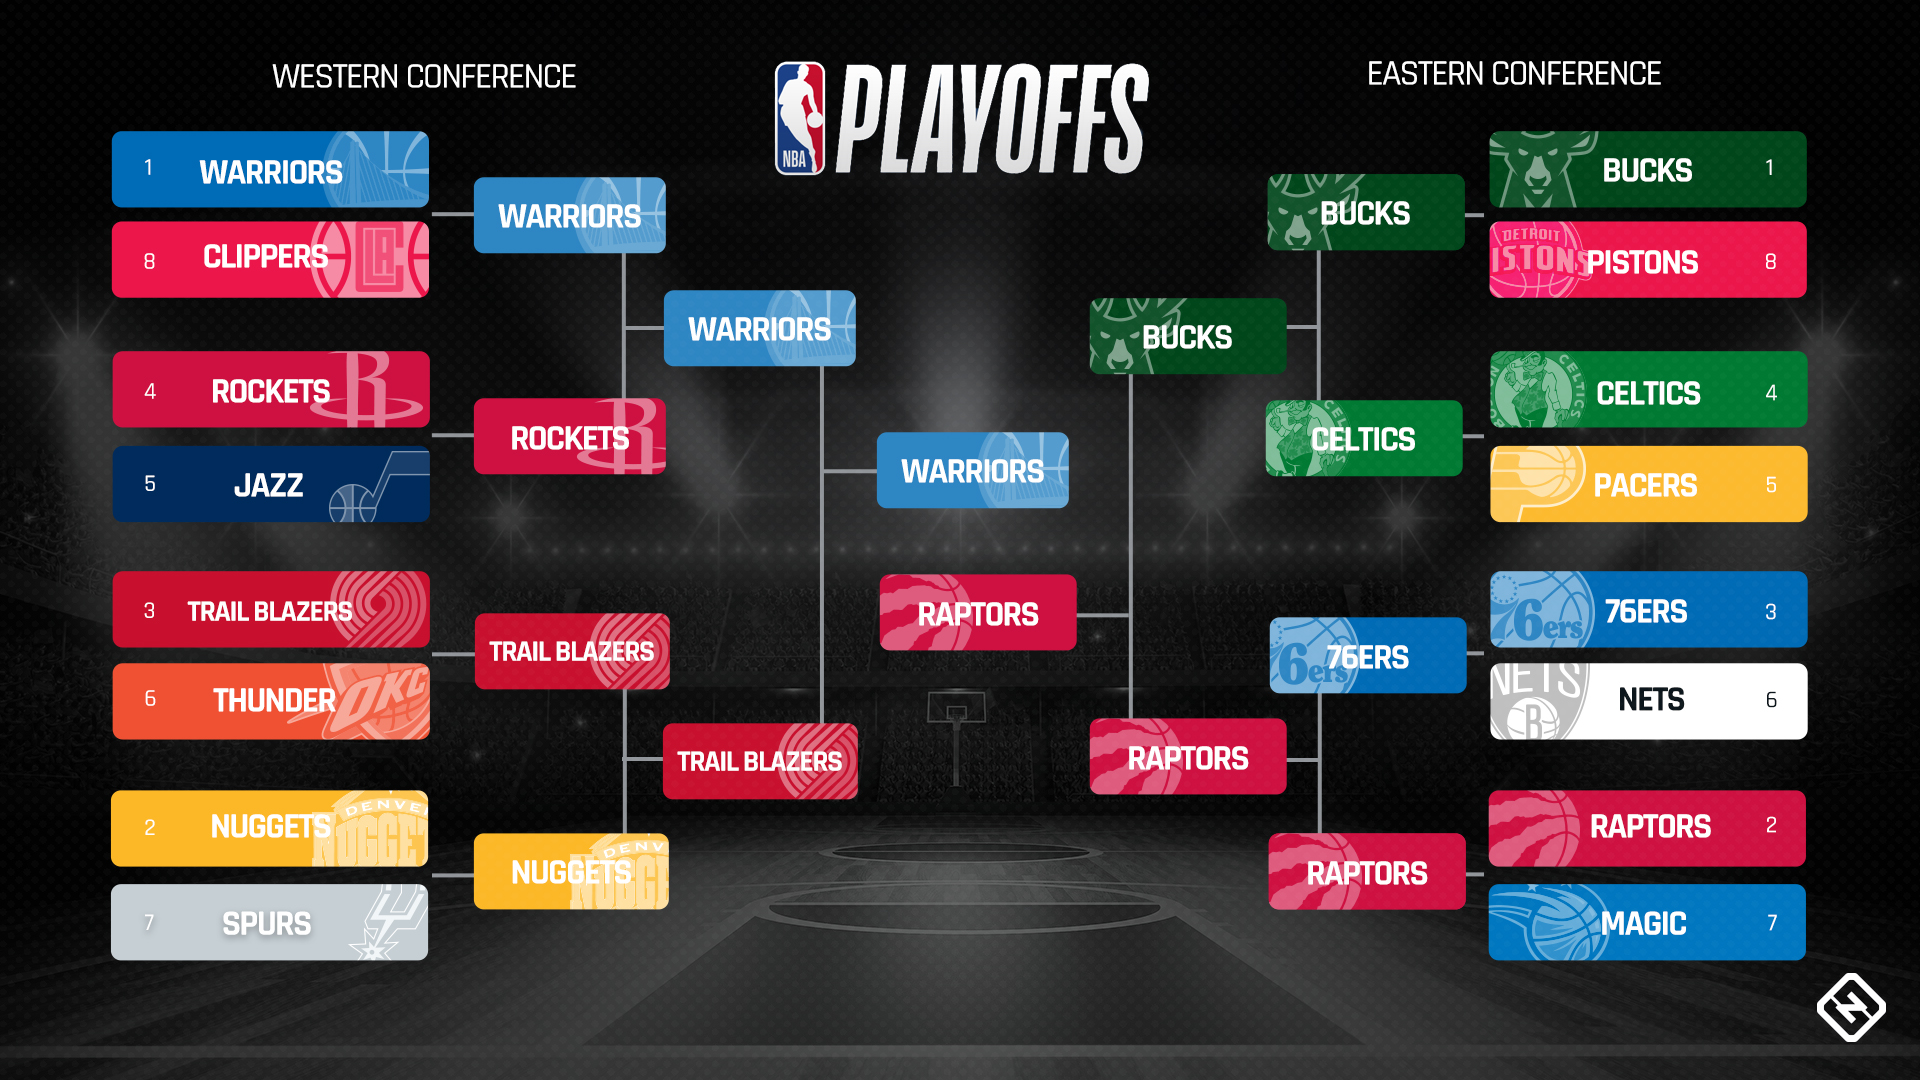 NBA playoffs schedule 2019: Full bracket, dates, times, TV channels for every series